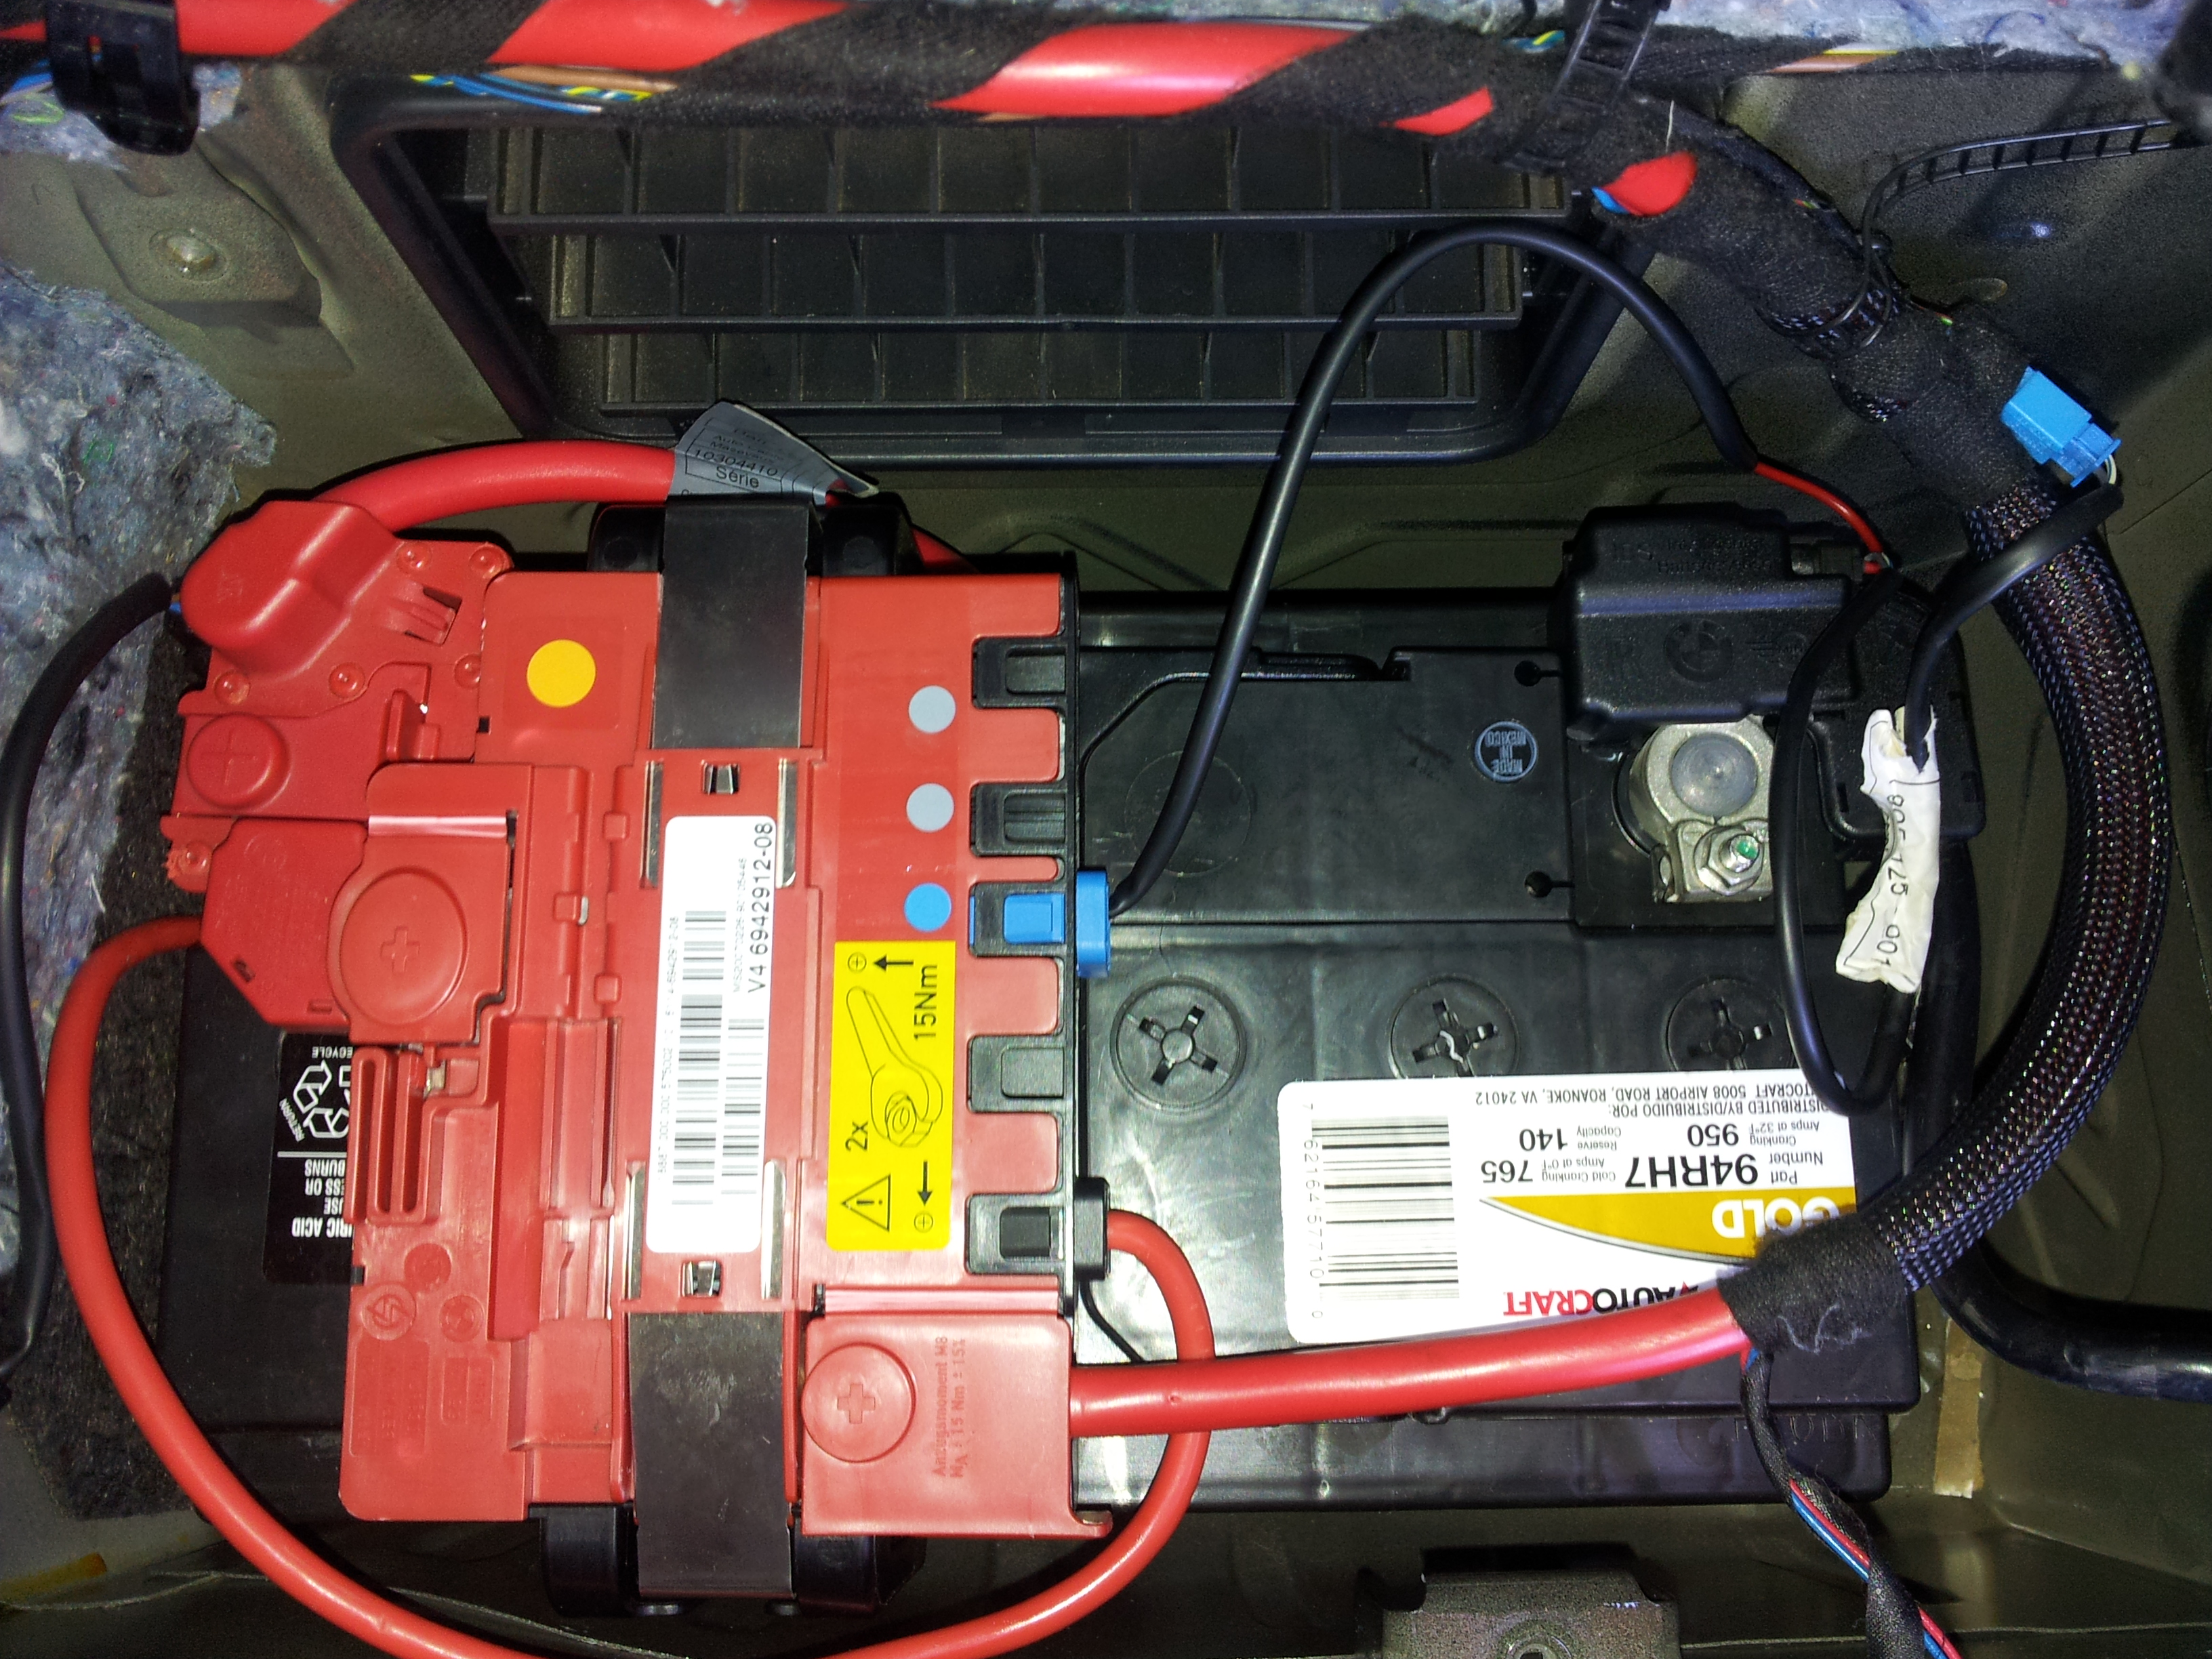 2012 07 15_163550_20120715_111800 2007 bmw 335i sedan (e90) the battery was replaced at advanced bmw e90 battery wiring diagram at bayanpartner.co